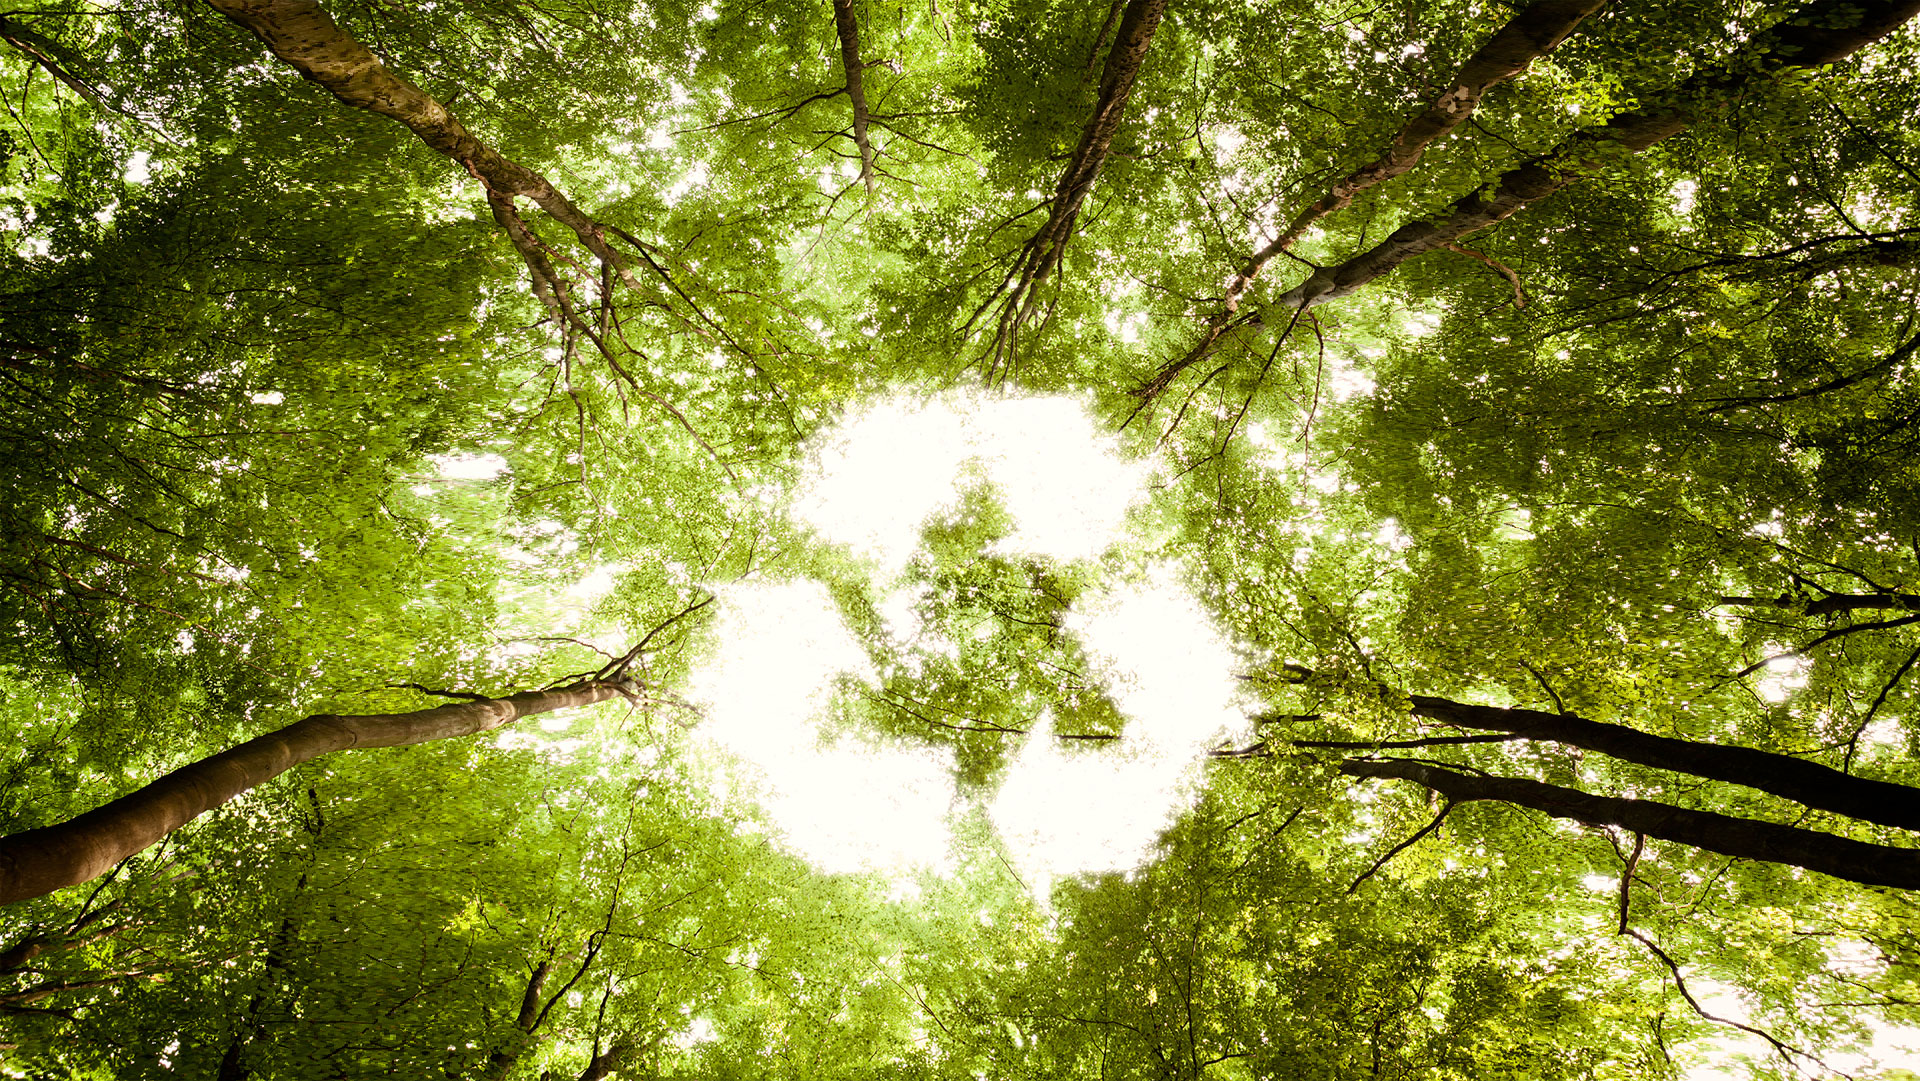 Green Week Tuesday – Easy Ways to Reduce Your Carbon Footprint